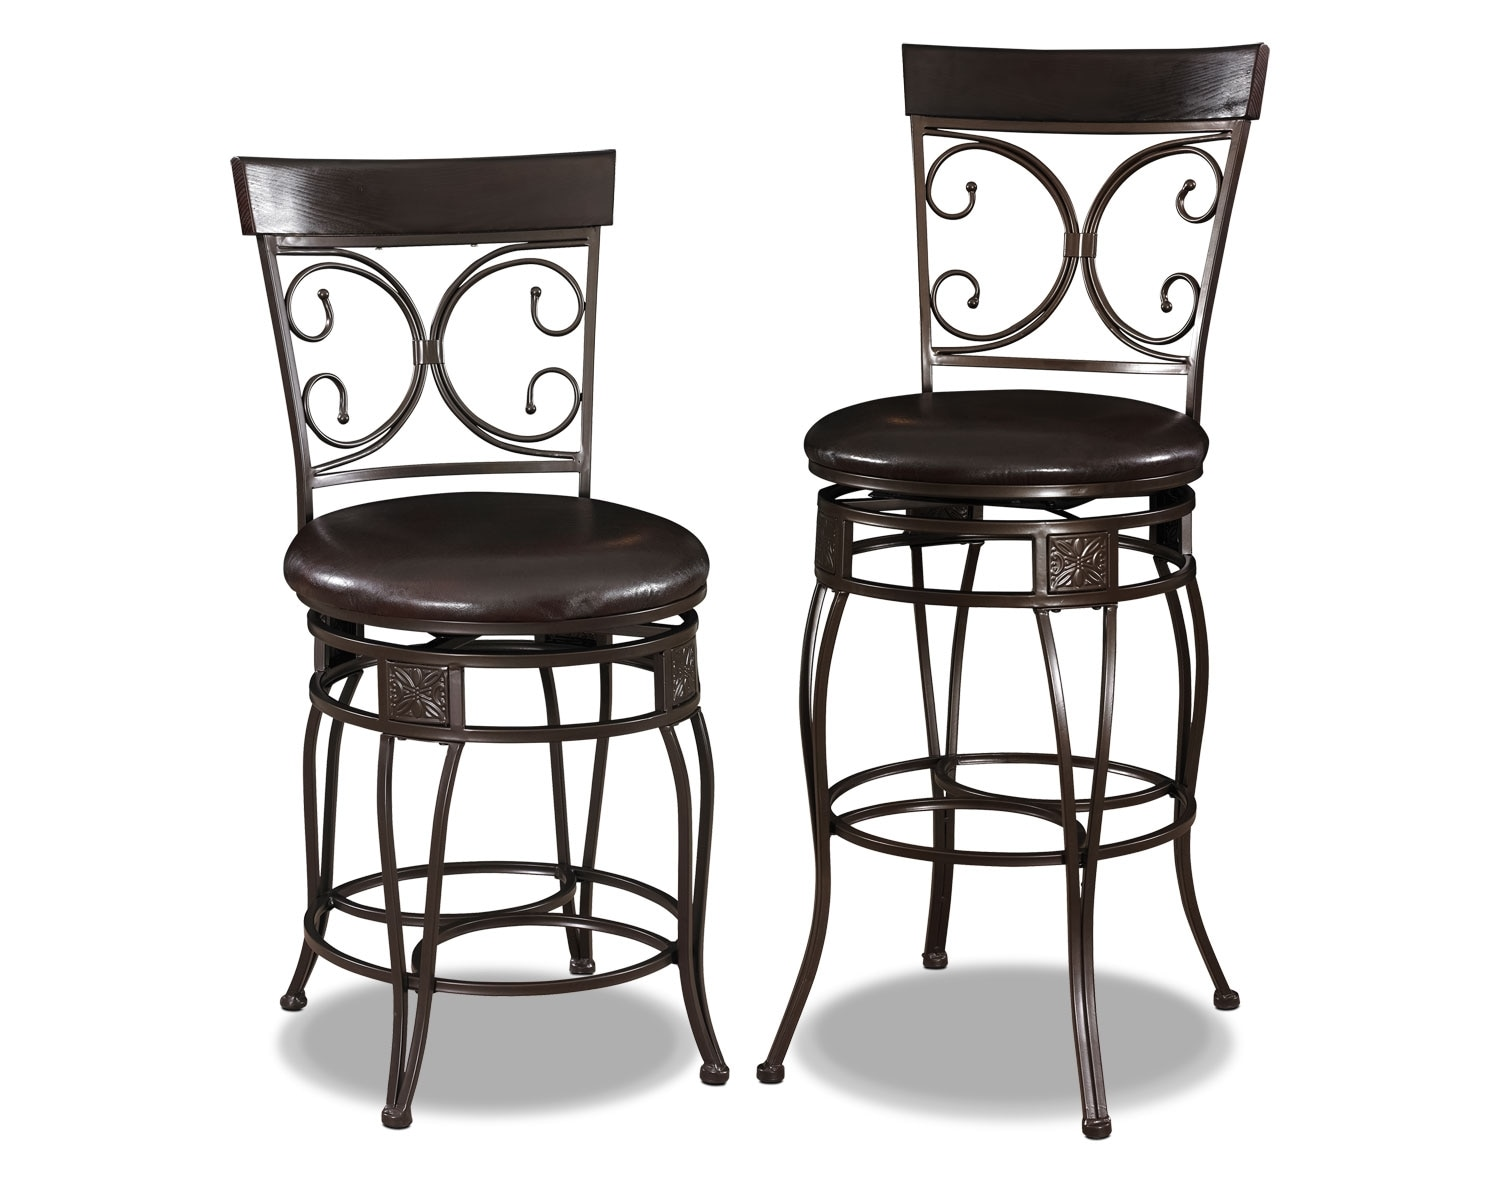 The Grandview Barstool Collection